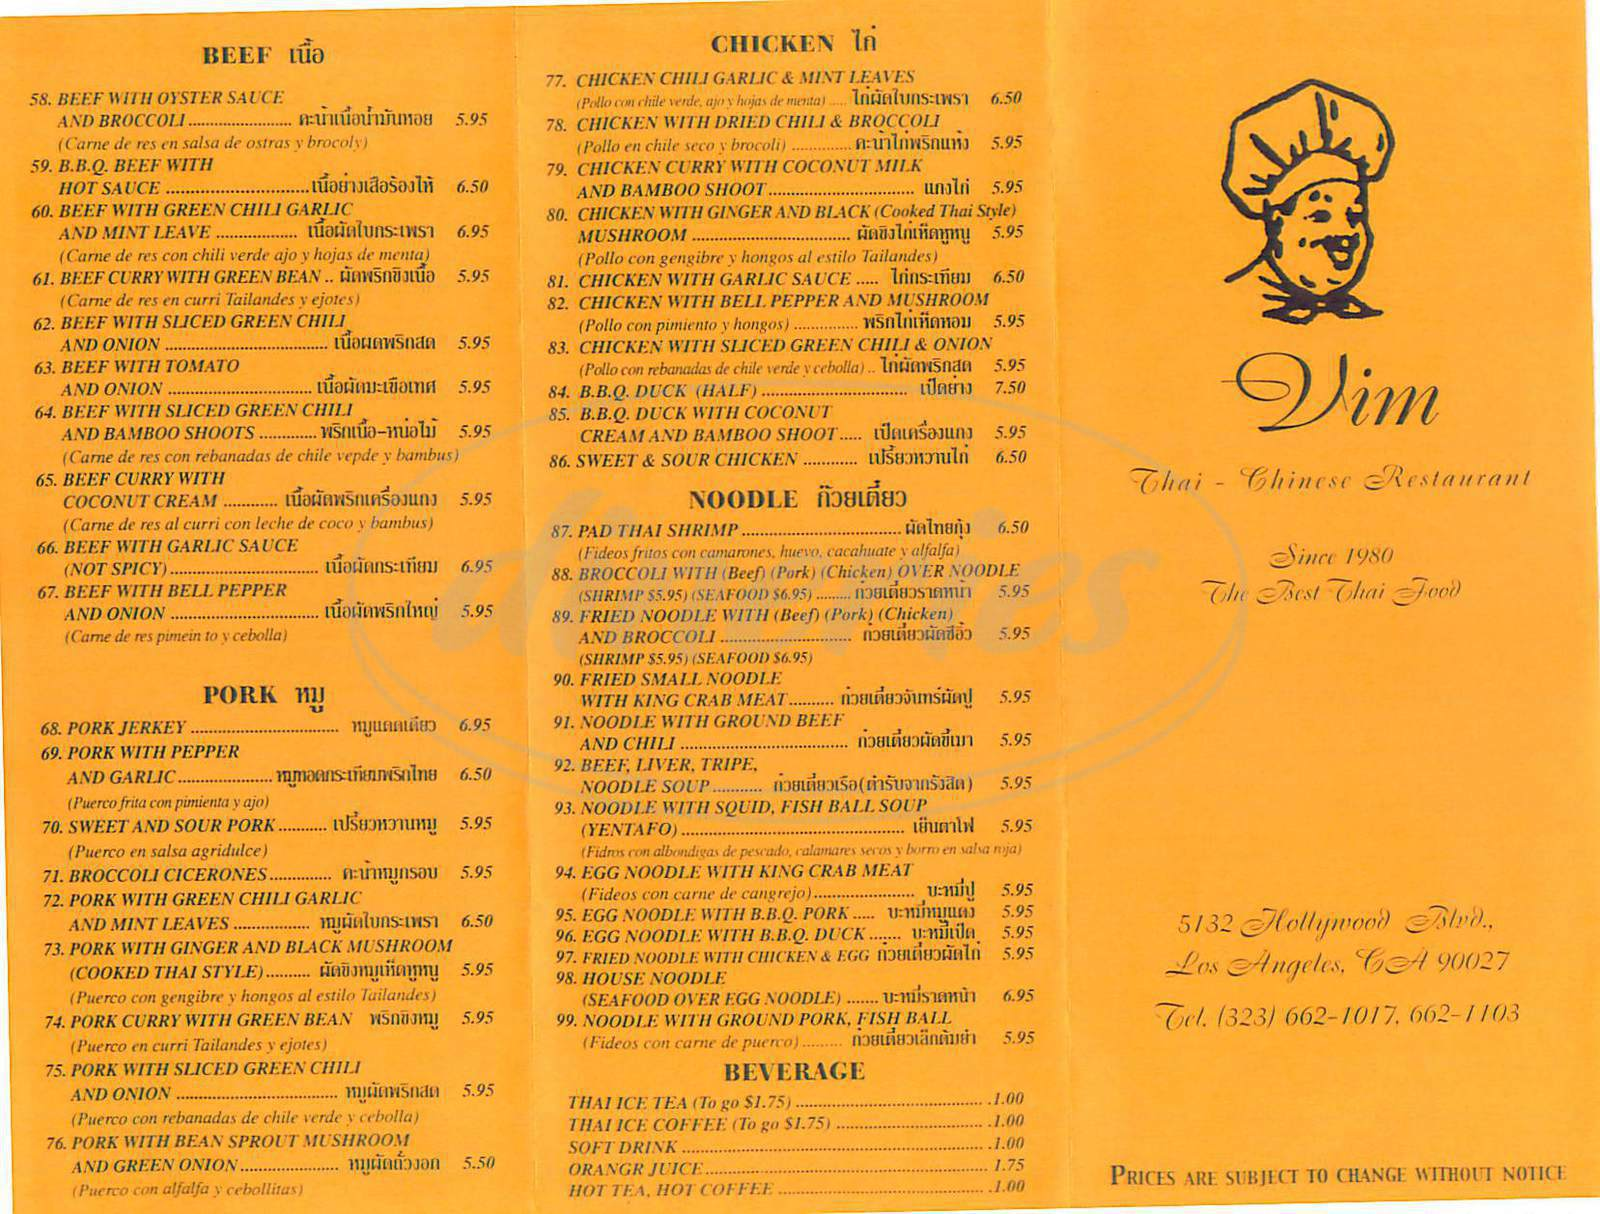 menu for Vim Thai Chinese Restaurant